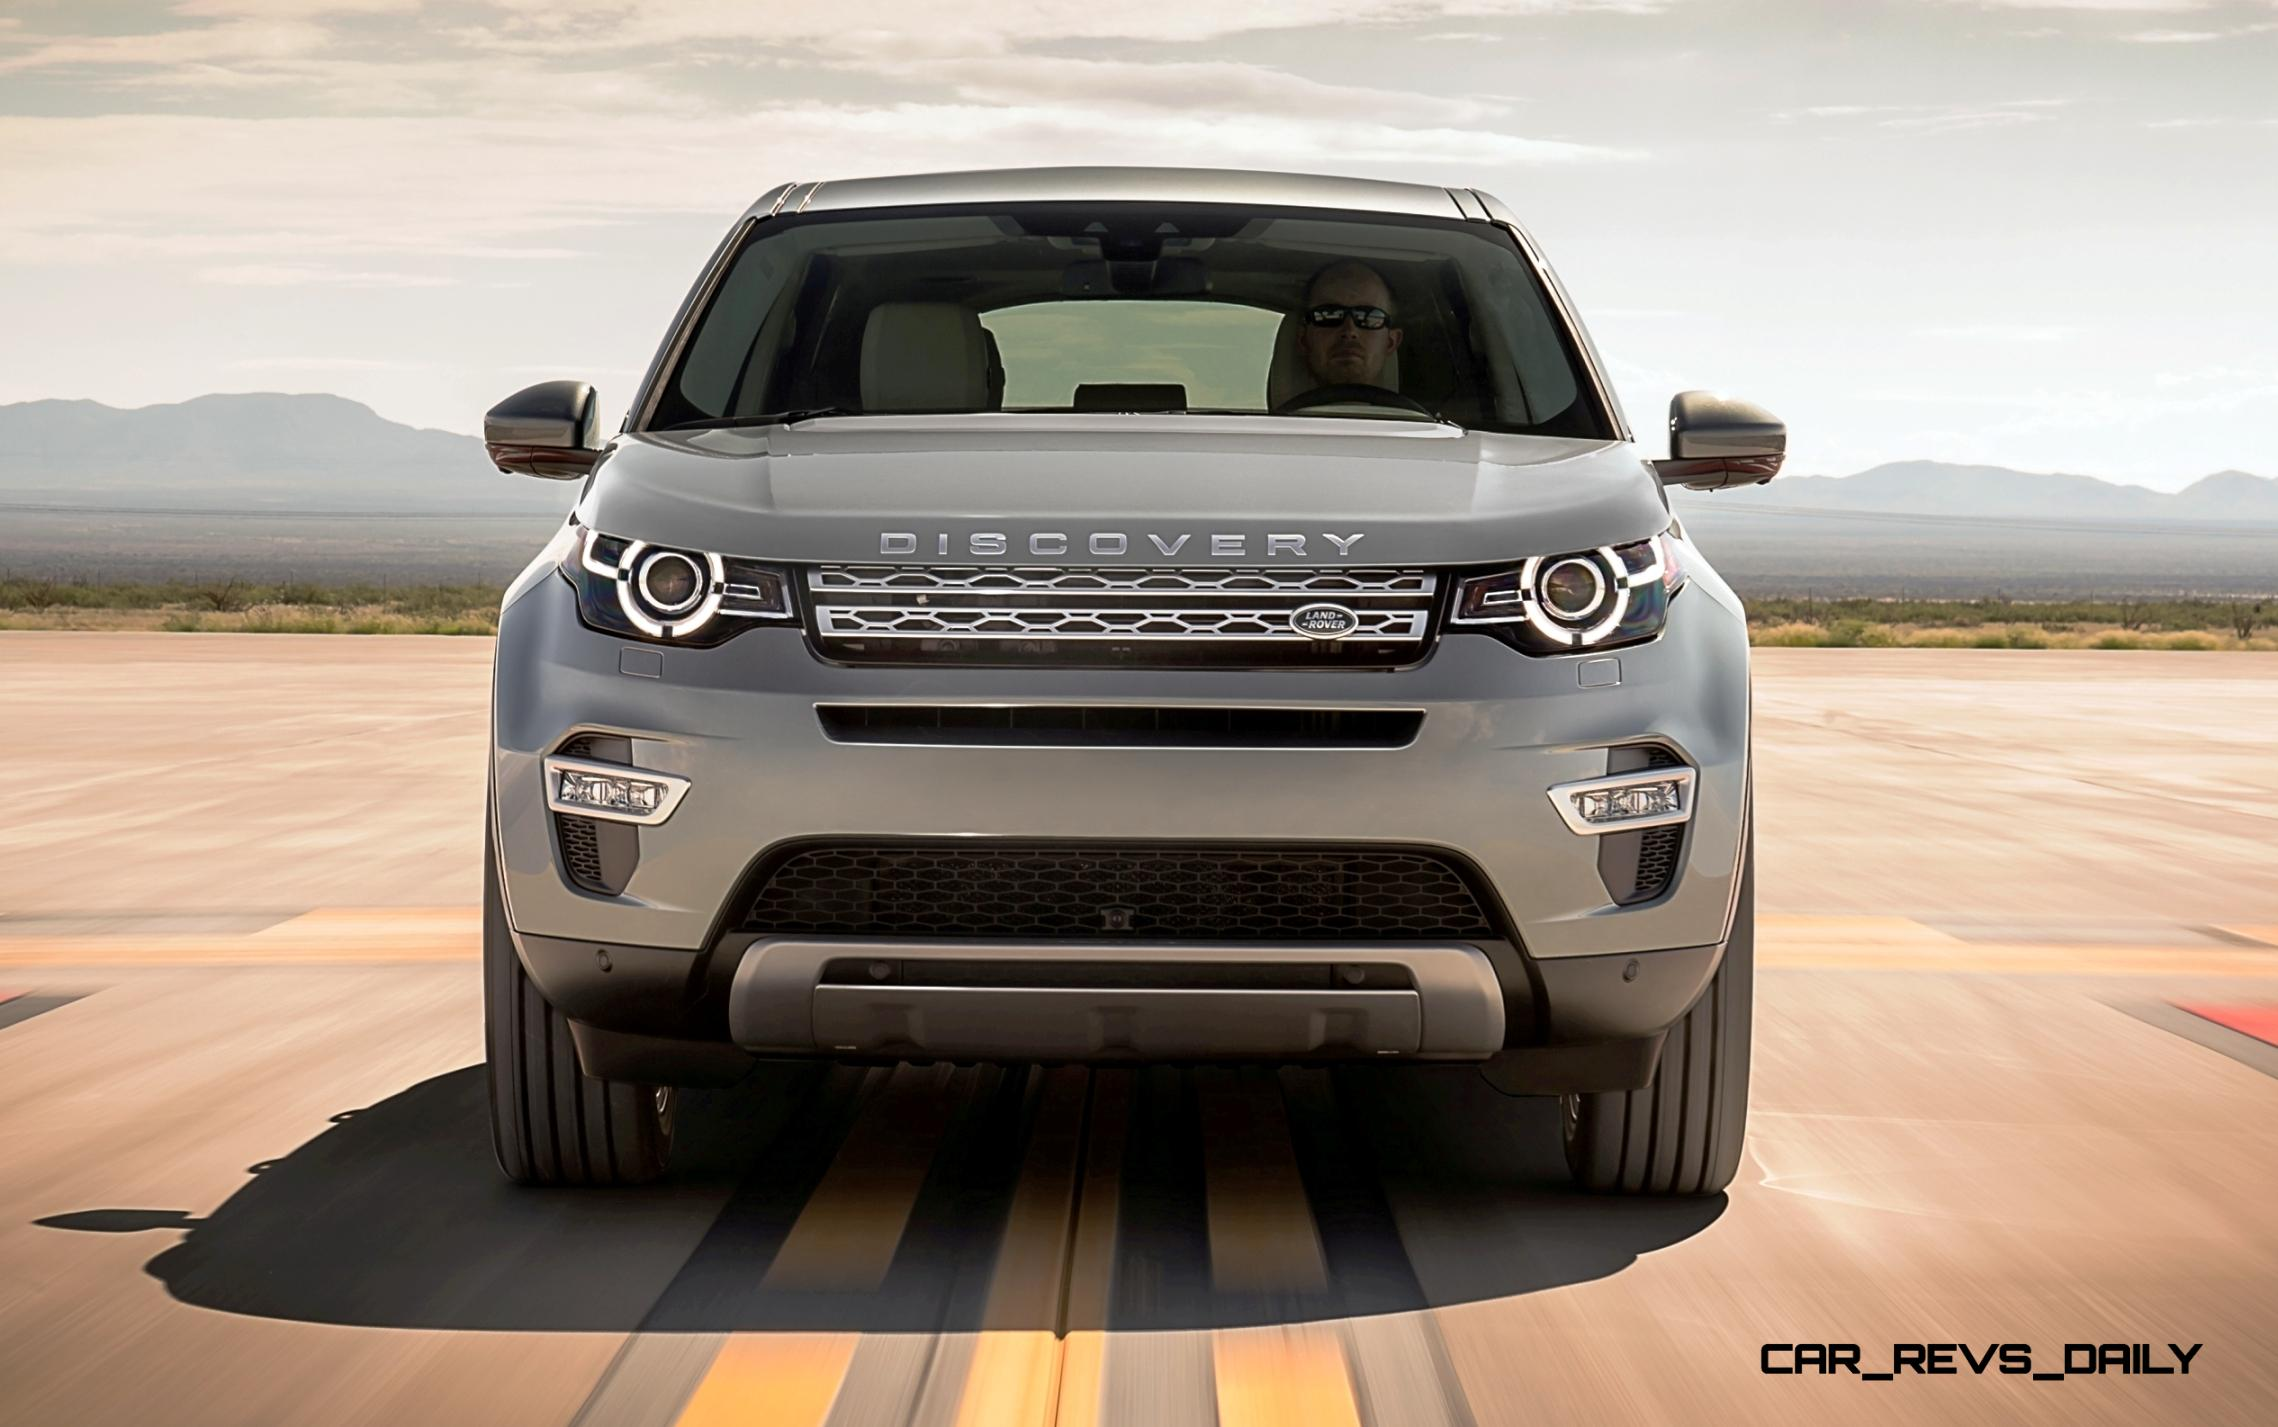 2015 Land Rover Discovery Sport Is All New 5 2 Crossover From 38k Coupling Lr Ds Spaceport Location 04 09 01 07